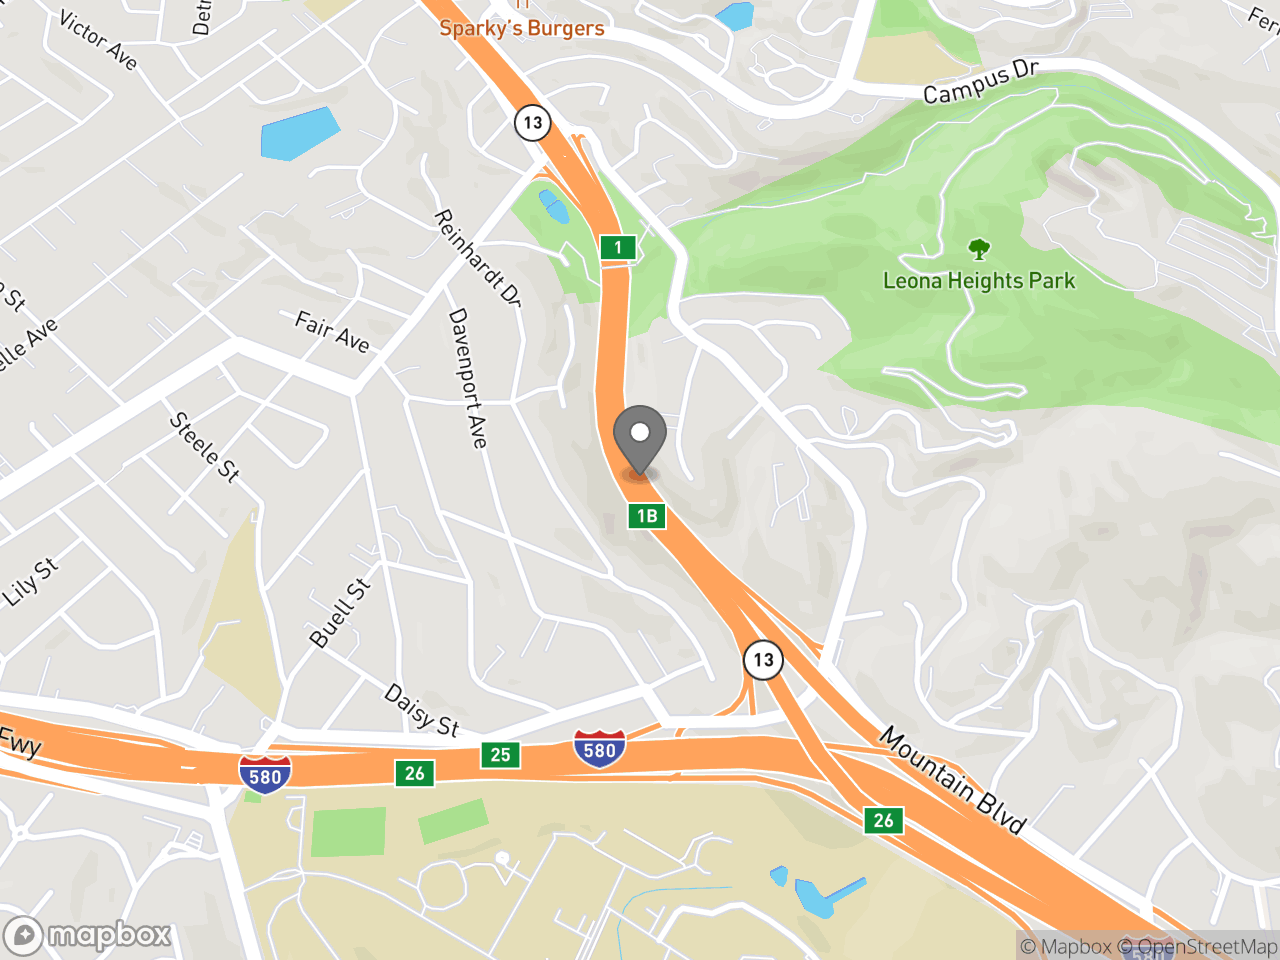 Map location for Mandated Sewer Main Rehabilitation to Require Temporary Highway 13 Lane Closures, located at CA-13 in Oakland, CA